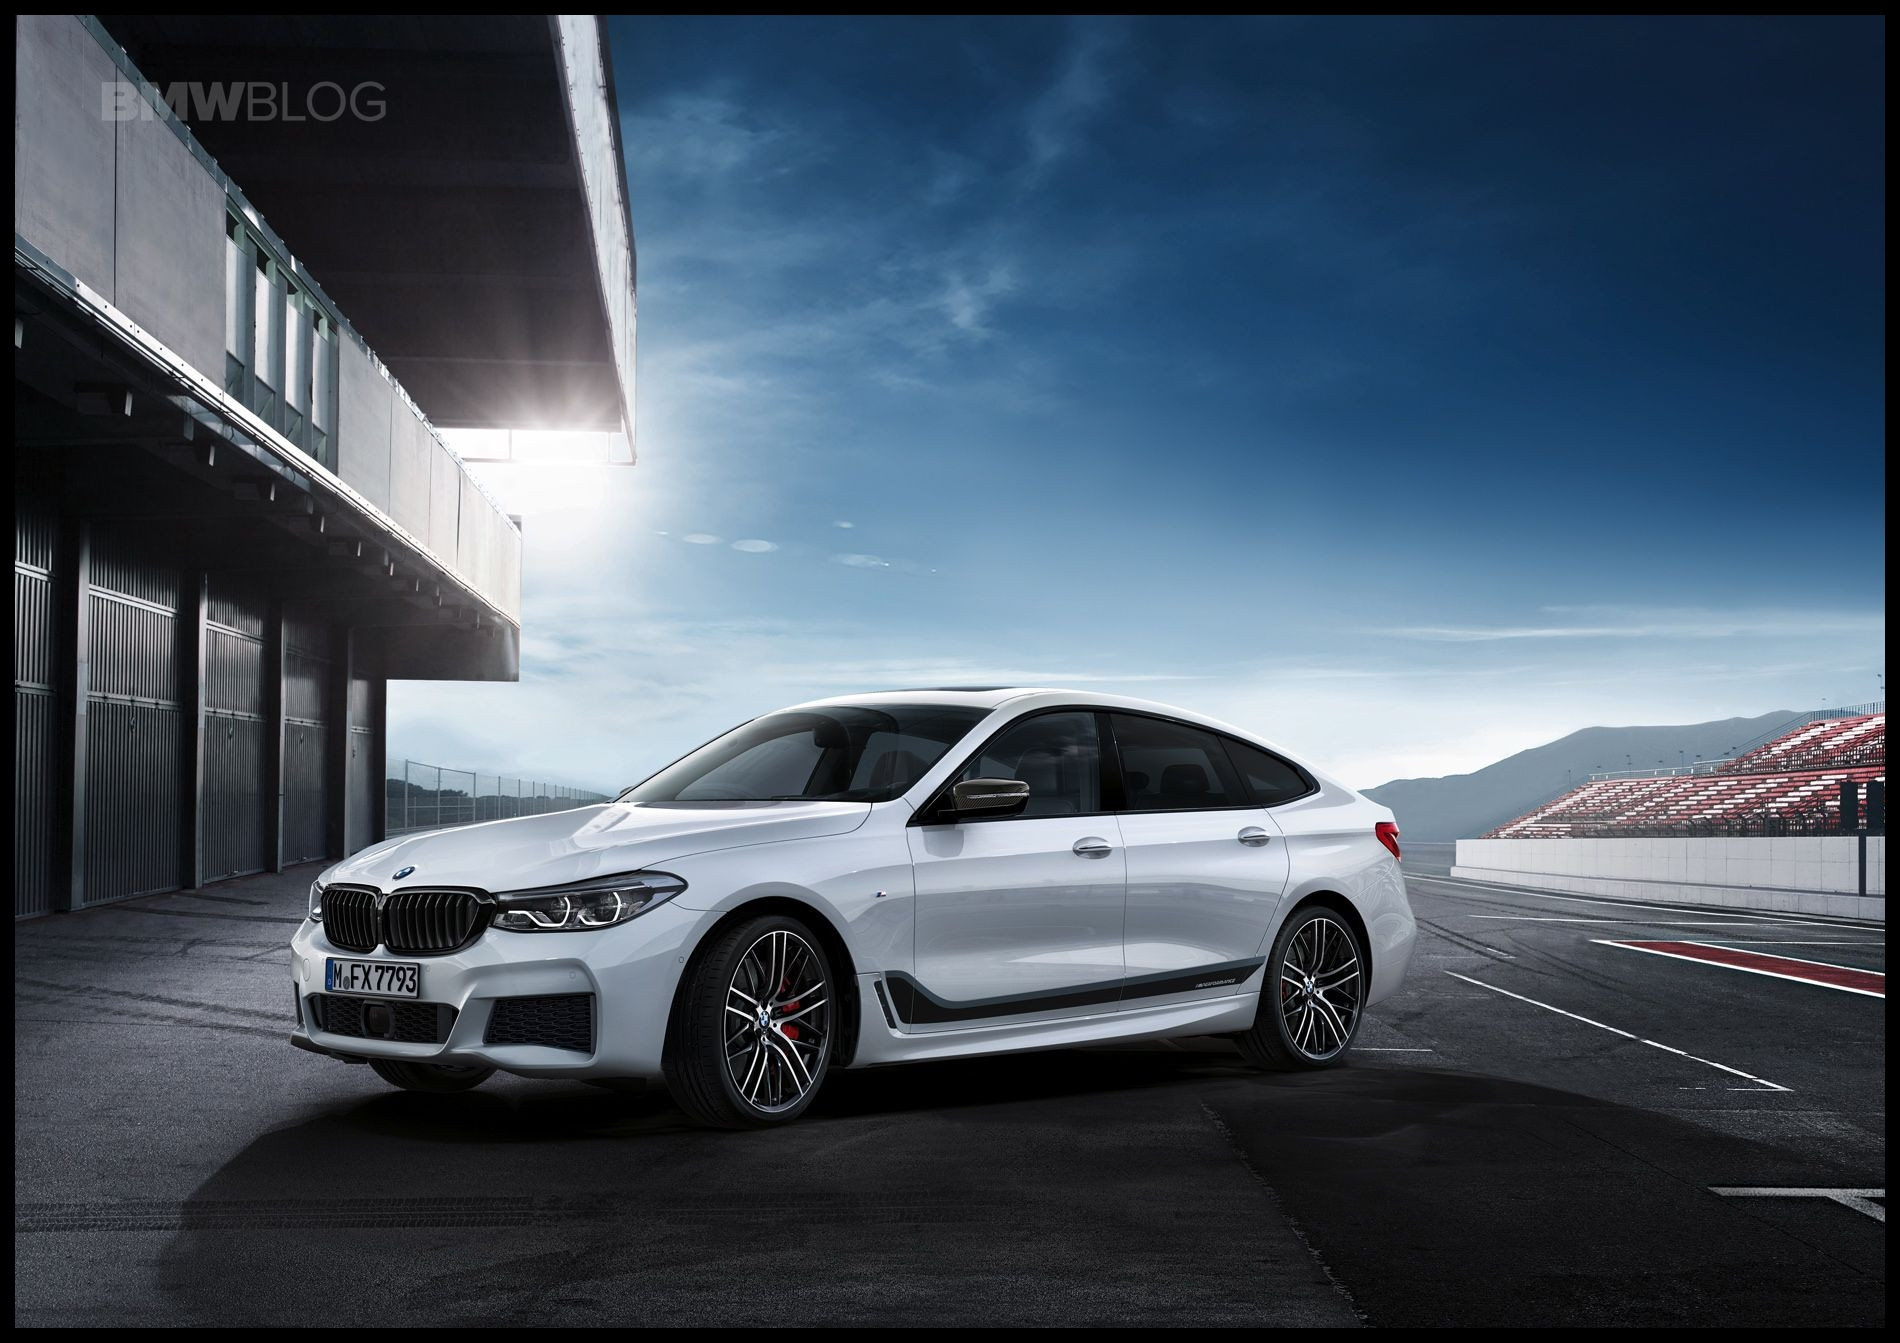 Bmw 4 Series Performance Parts Best the Bmw M Performance Tuning Accessory for the New